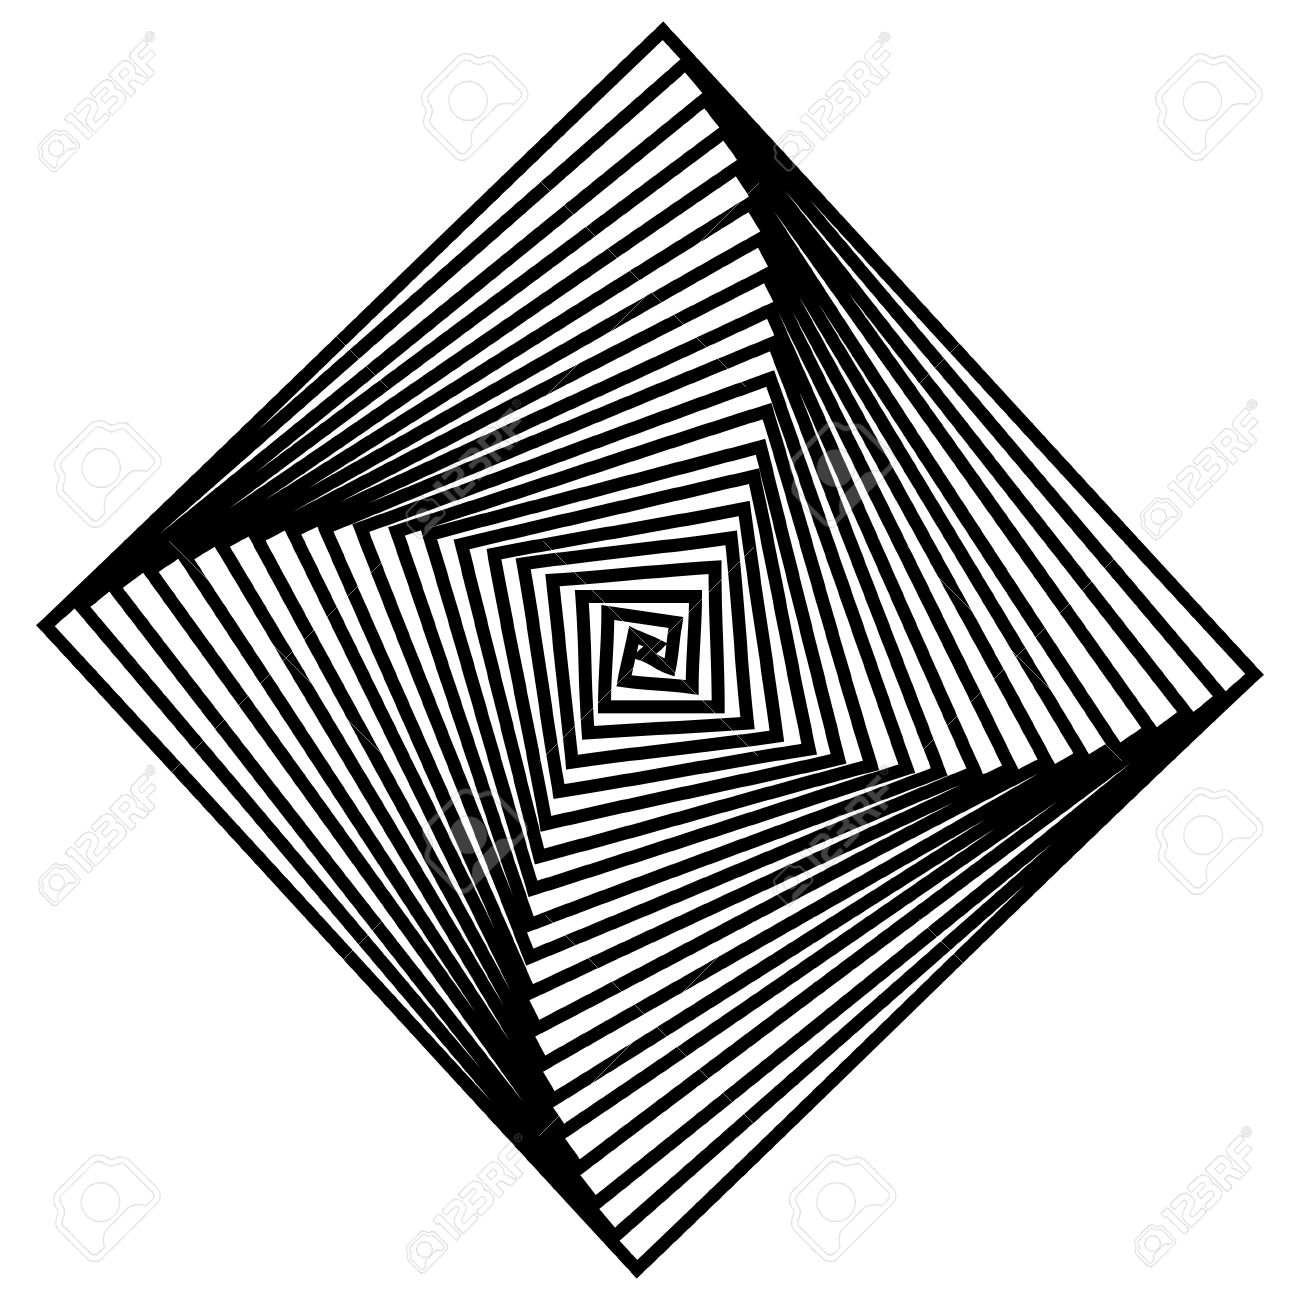 Black and white hypnotic background. Stock Vector - 14965577